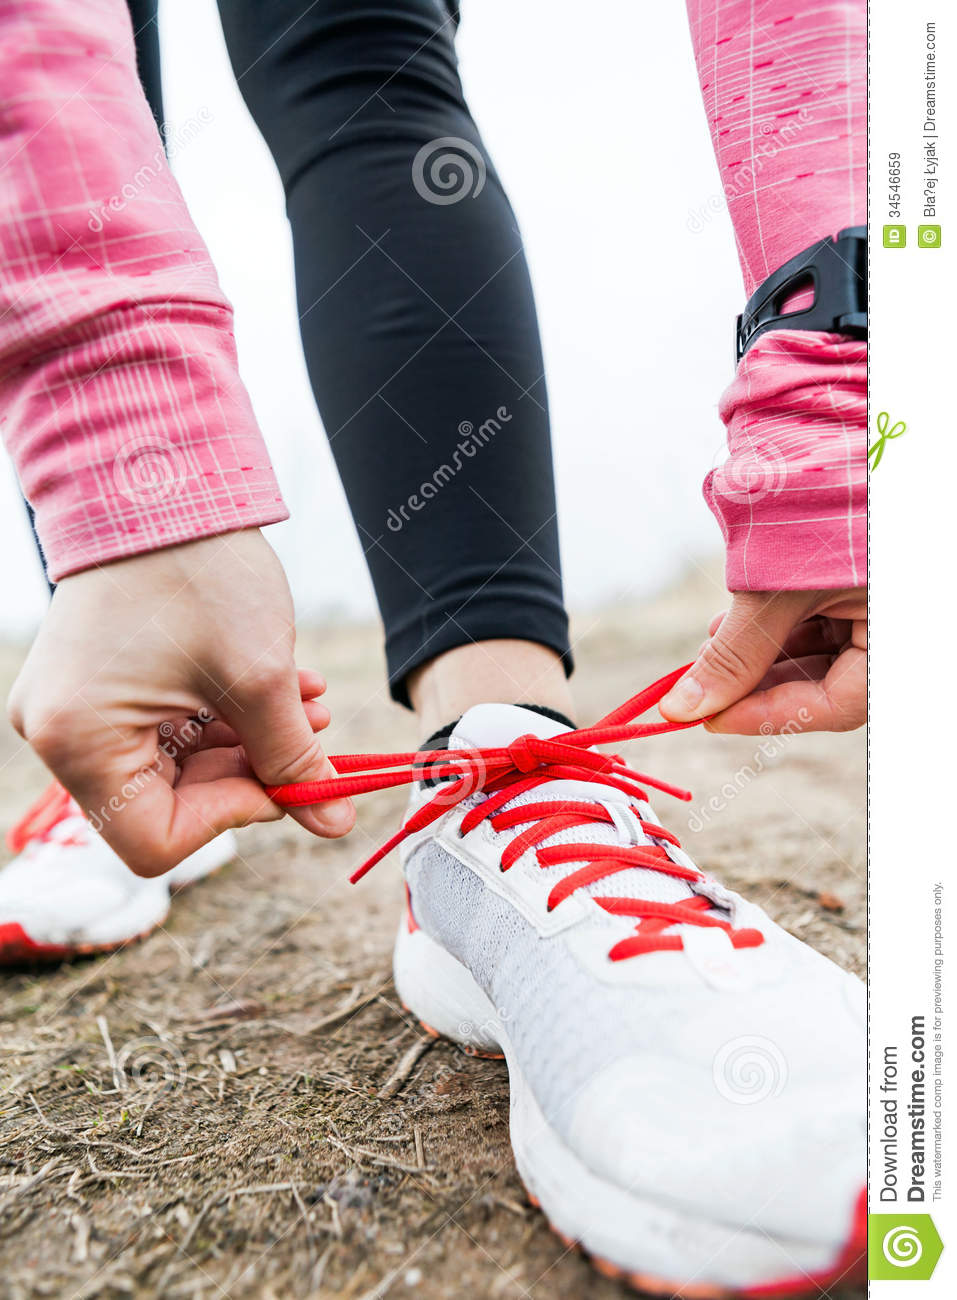 Holding Running Shoes With Mountains